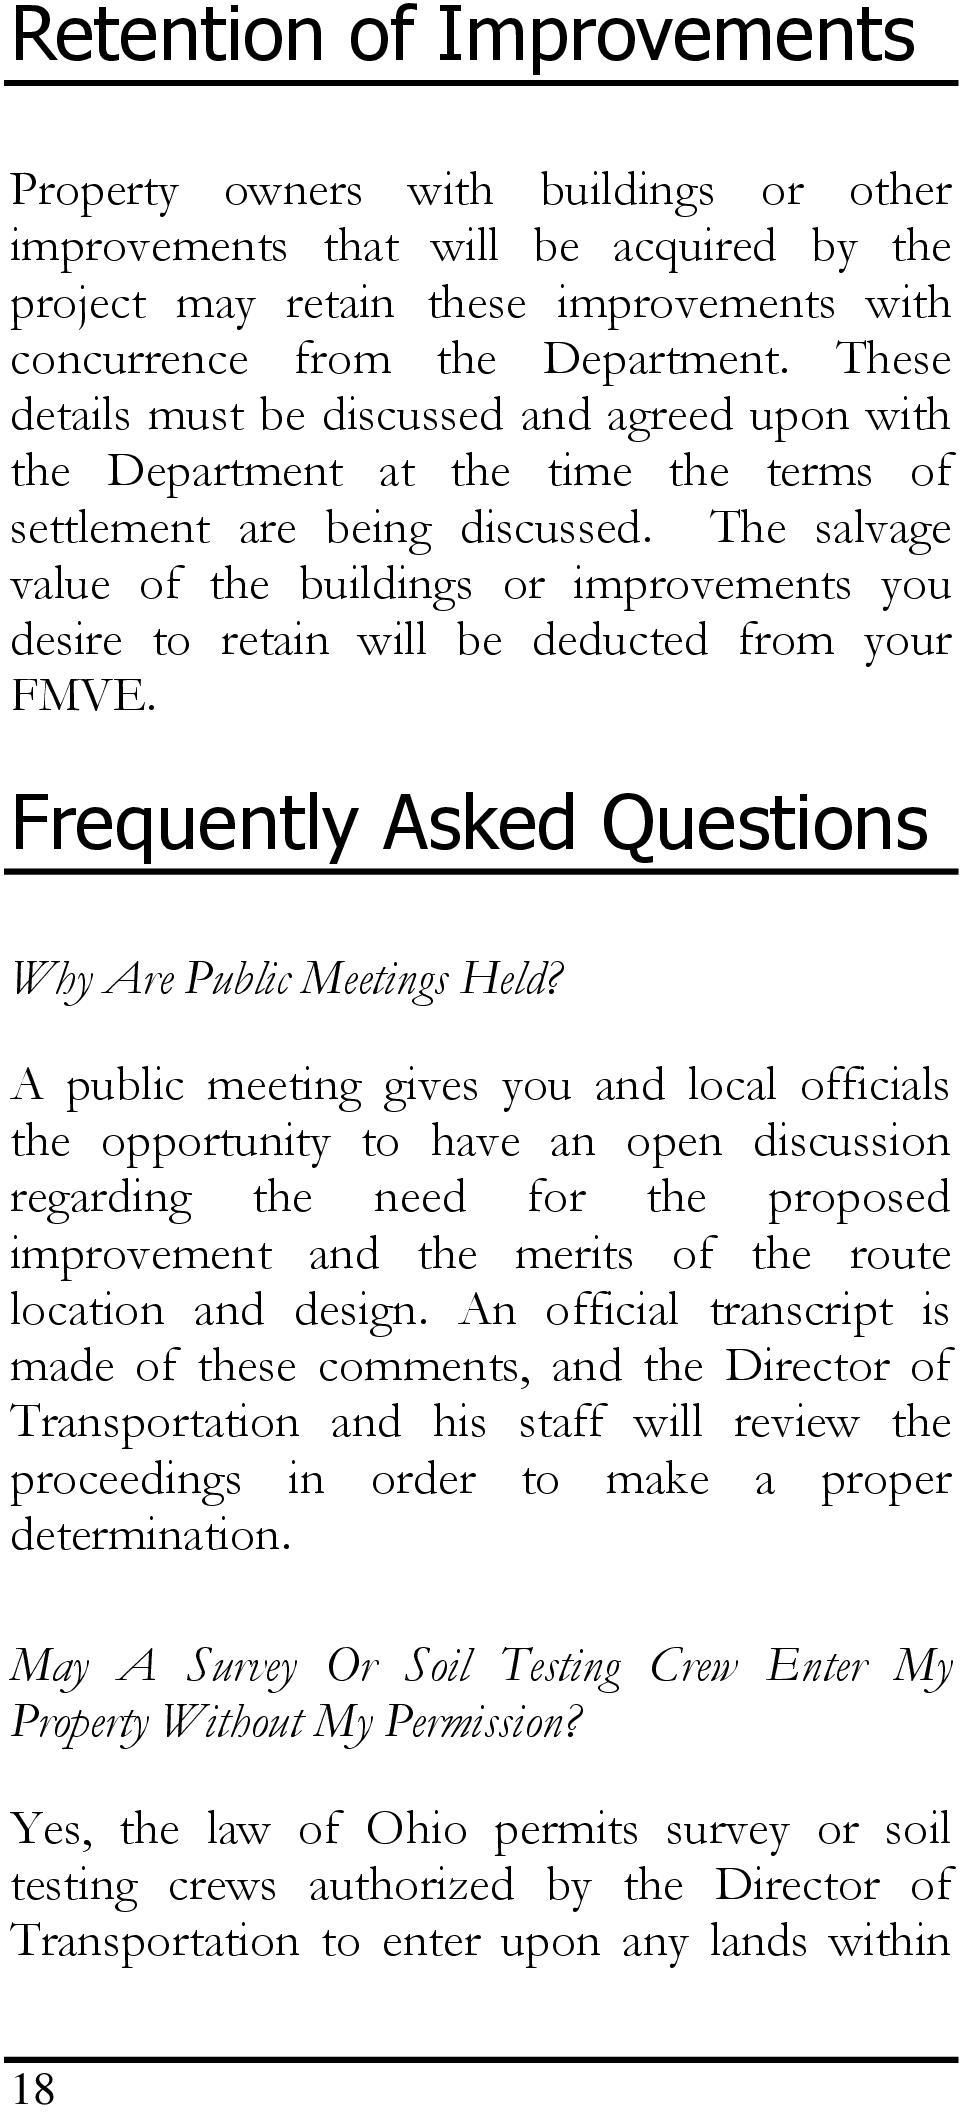 The salvage value of the buildings or improvements you desire to retain will be deducted from your FMVE. Frequently Asked Questions Why Are Public Meetings Held?